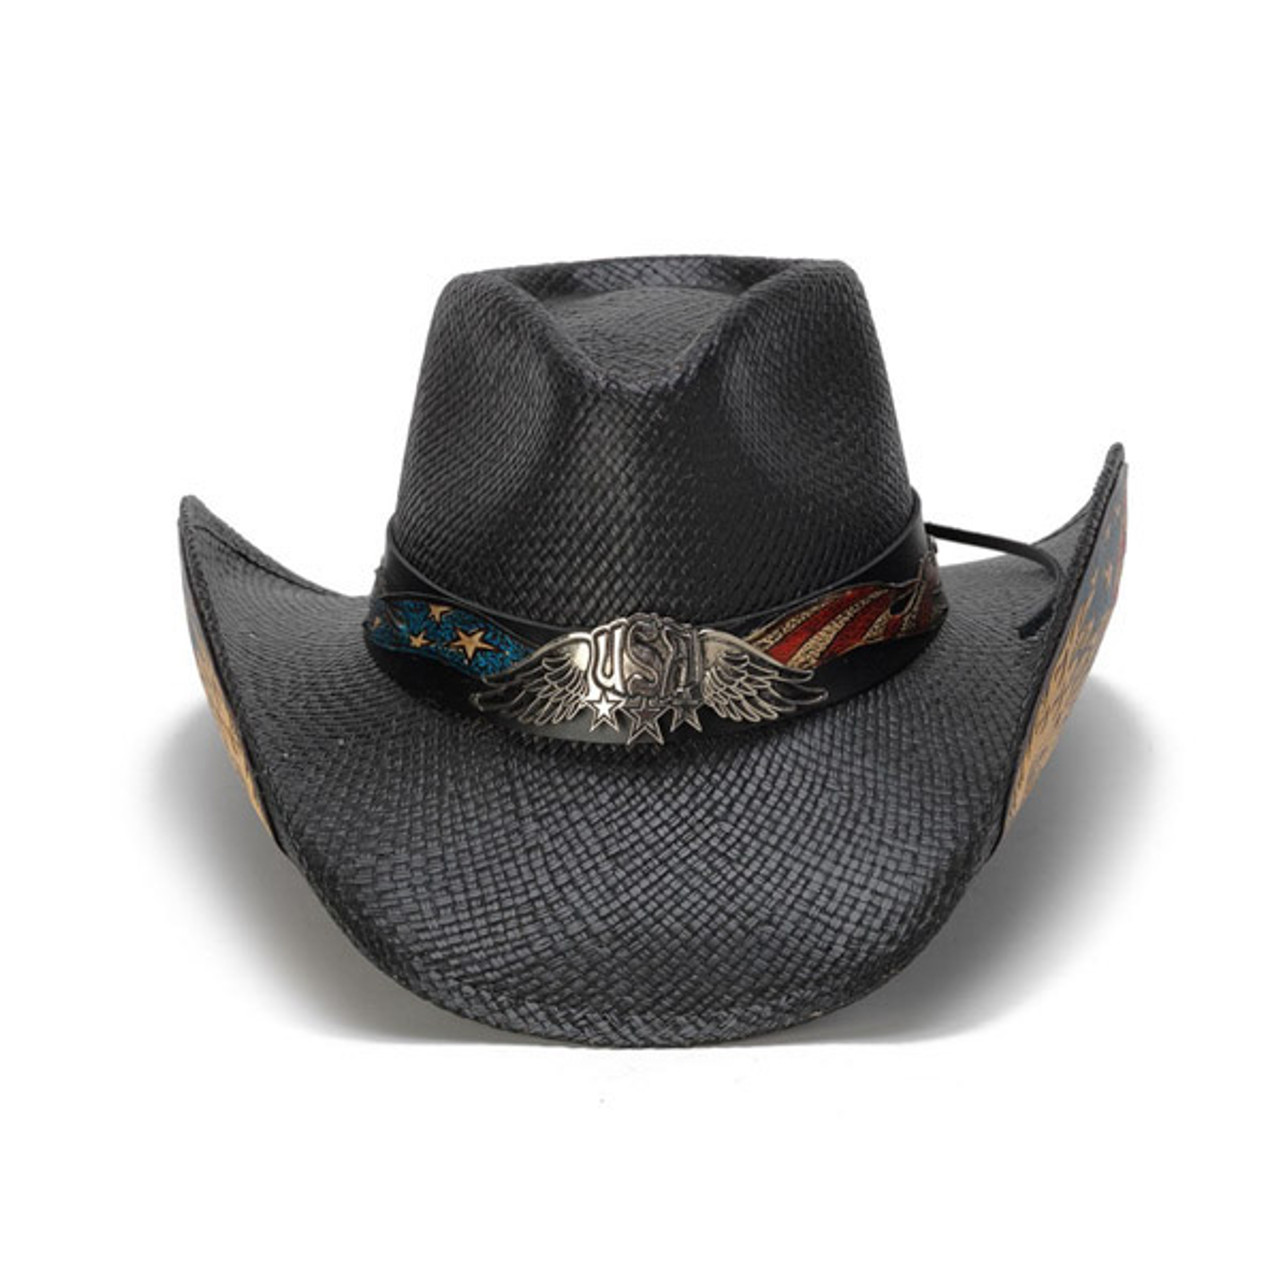 86dbf322 Stampede Hats - Black Vintage Eagle USA Cowboy Hat